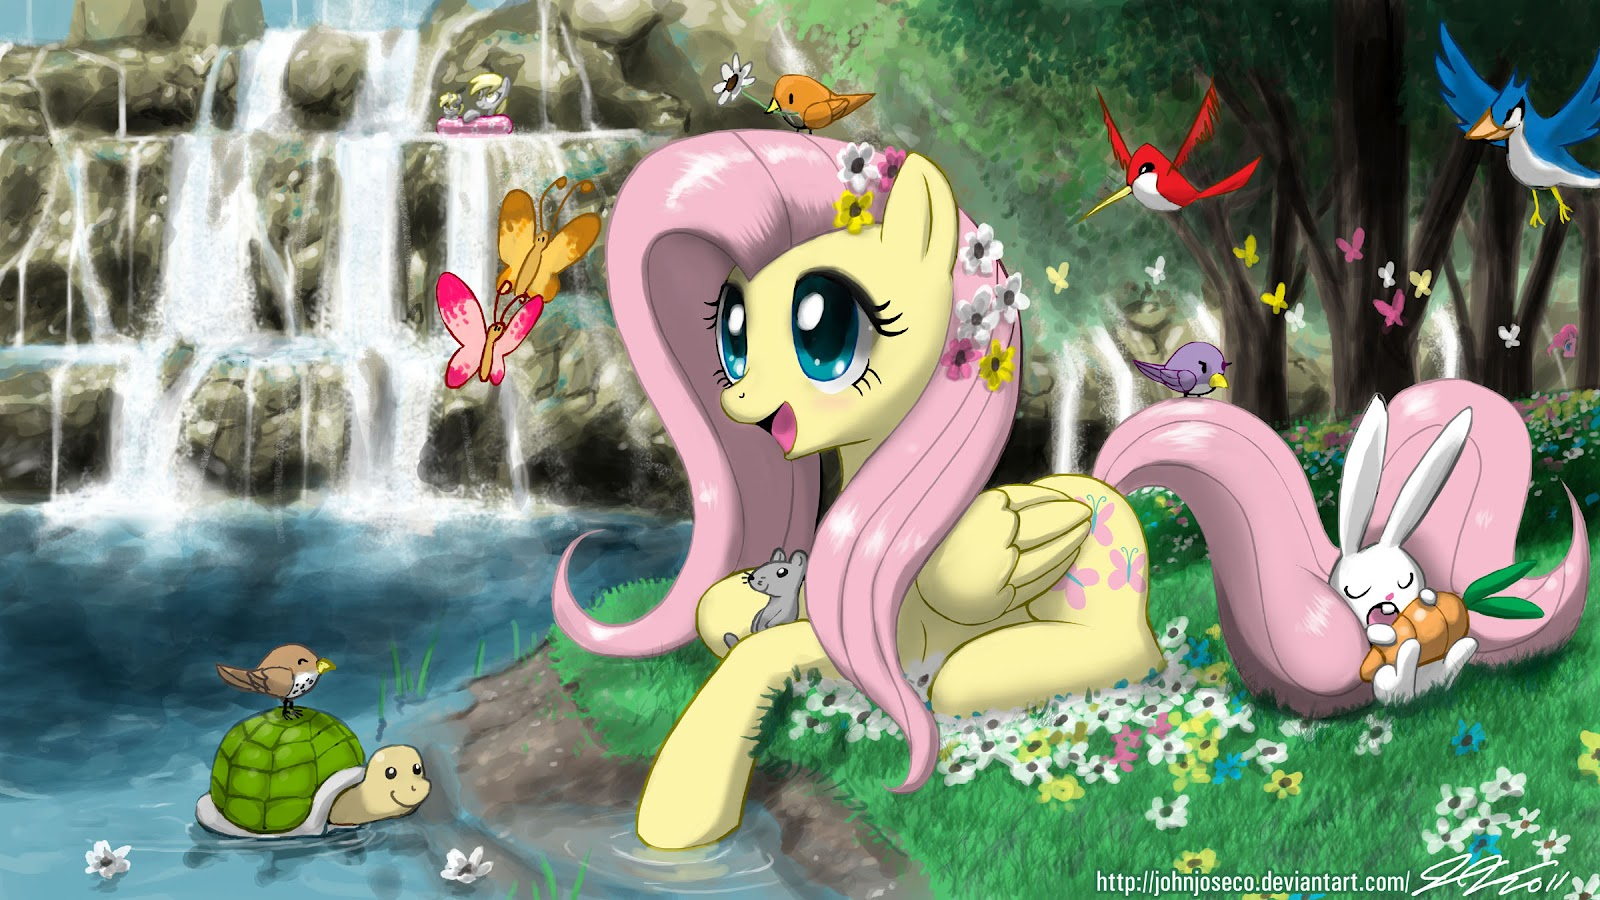 http://4.bp.blogspot.com/-WKtrU9XhOCM/T9EsvJAywkI/AAAAAAAAAwg/6fH07KGL-0Y/s1600/Fluttershy-my-little-pony-friendship-is-magic-25197840-2400-1350.jpg